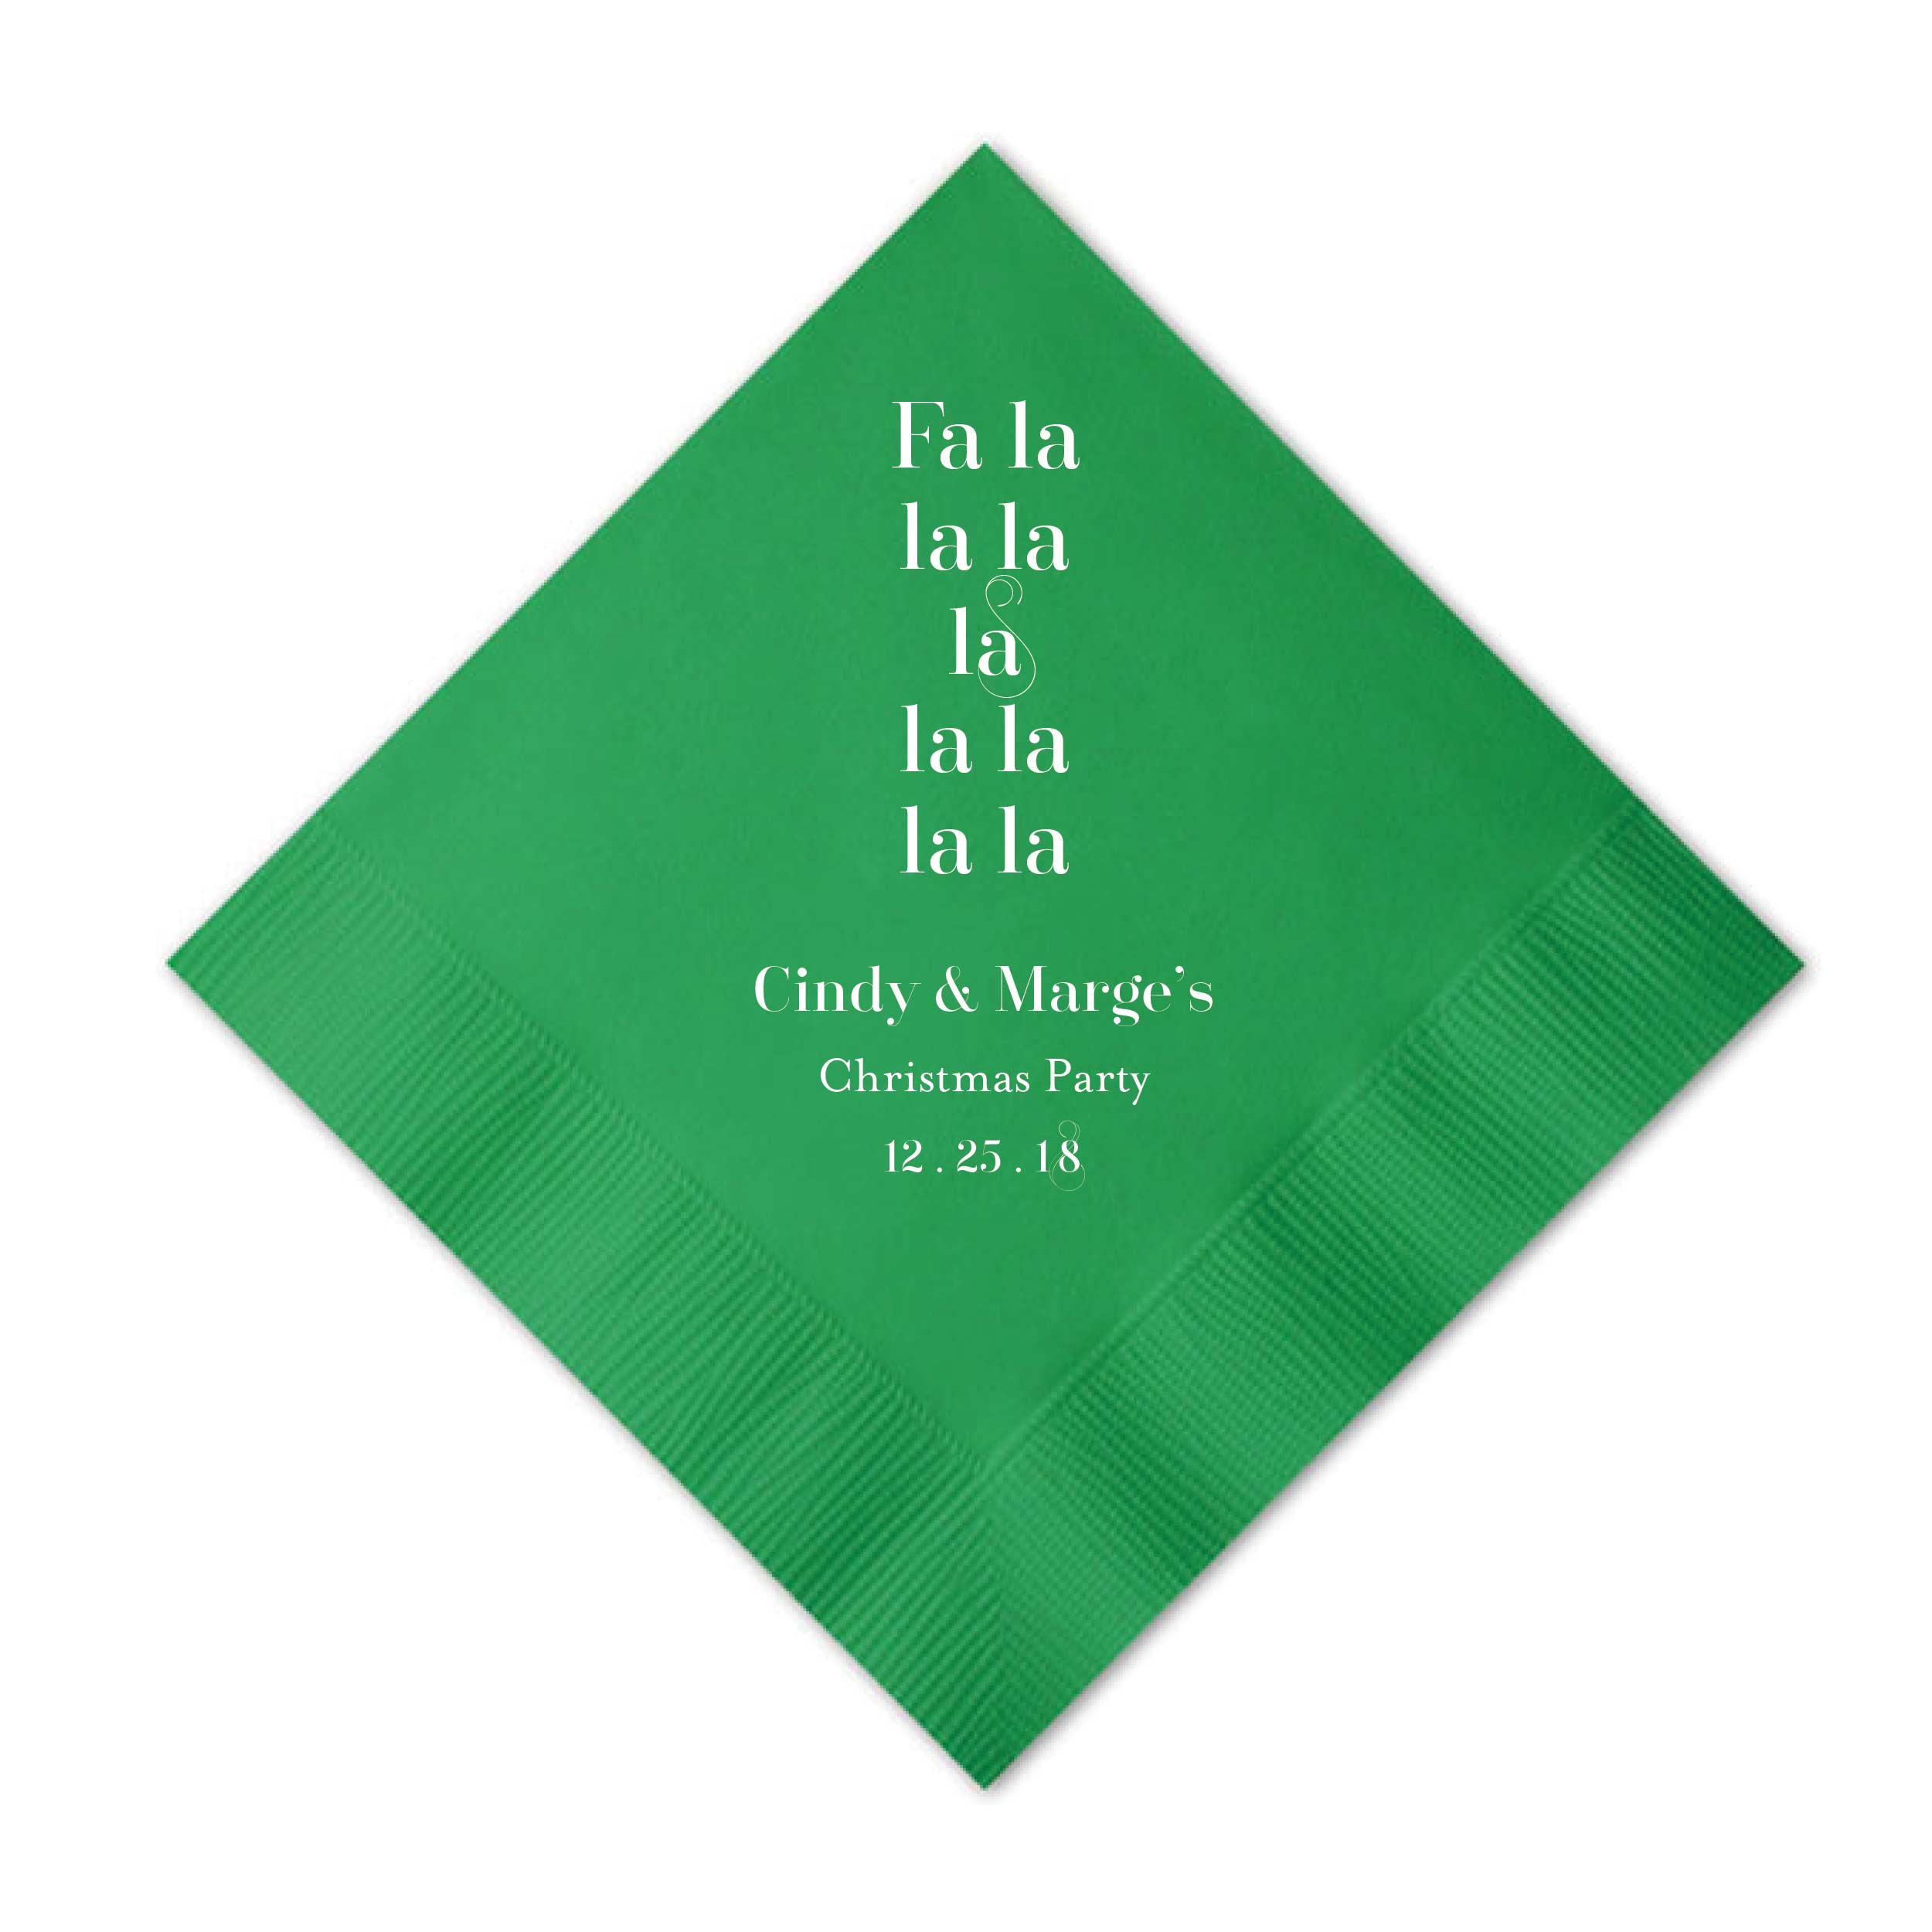 Christmas Napkins.Personalized Christmas Napkins Fa La La Set Of 100